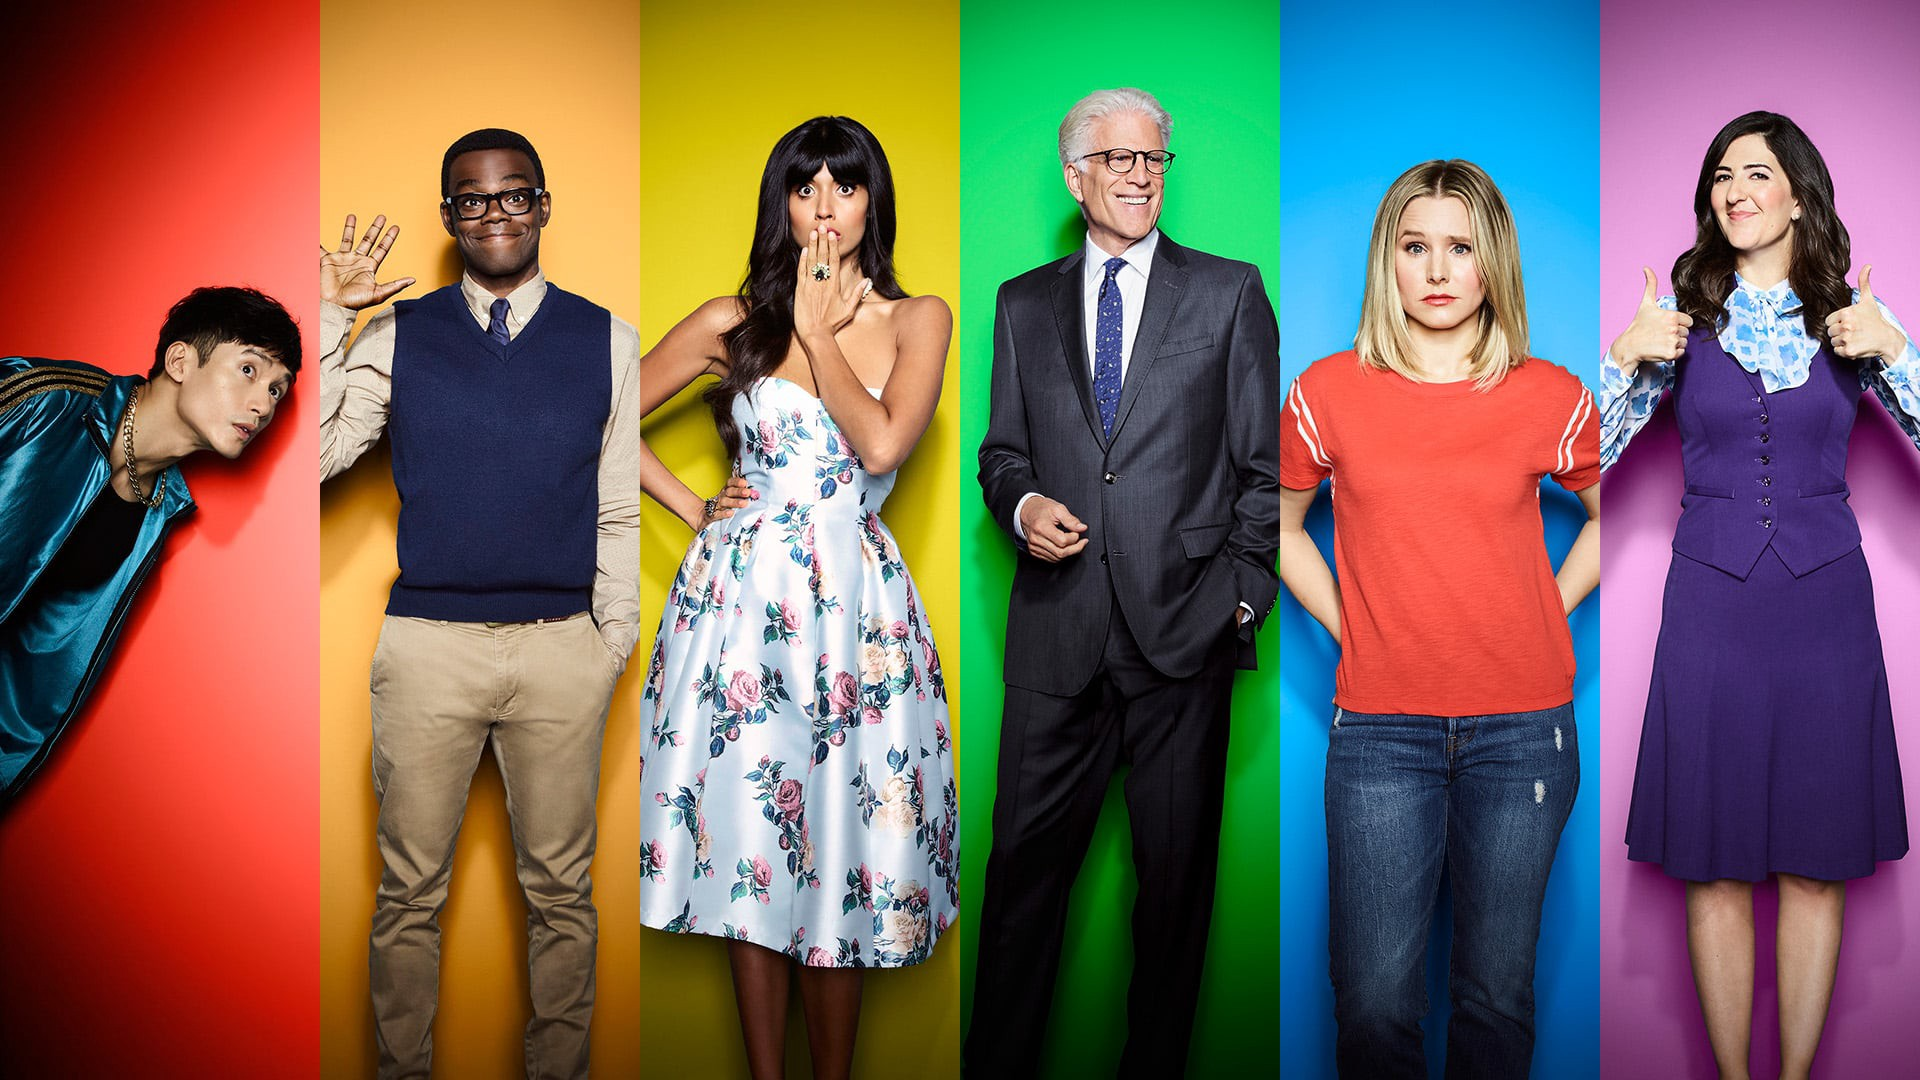 Did THE GOOD PLACE fork itself? - Dans Media Digest